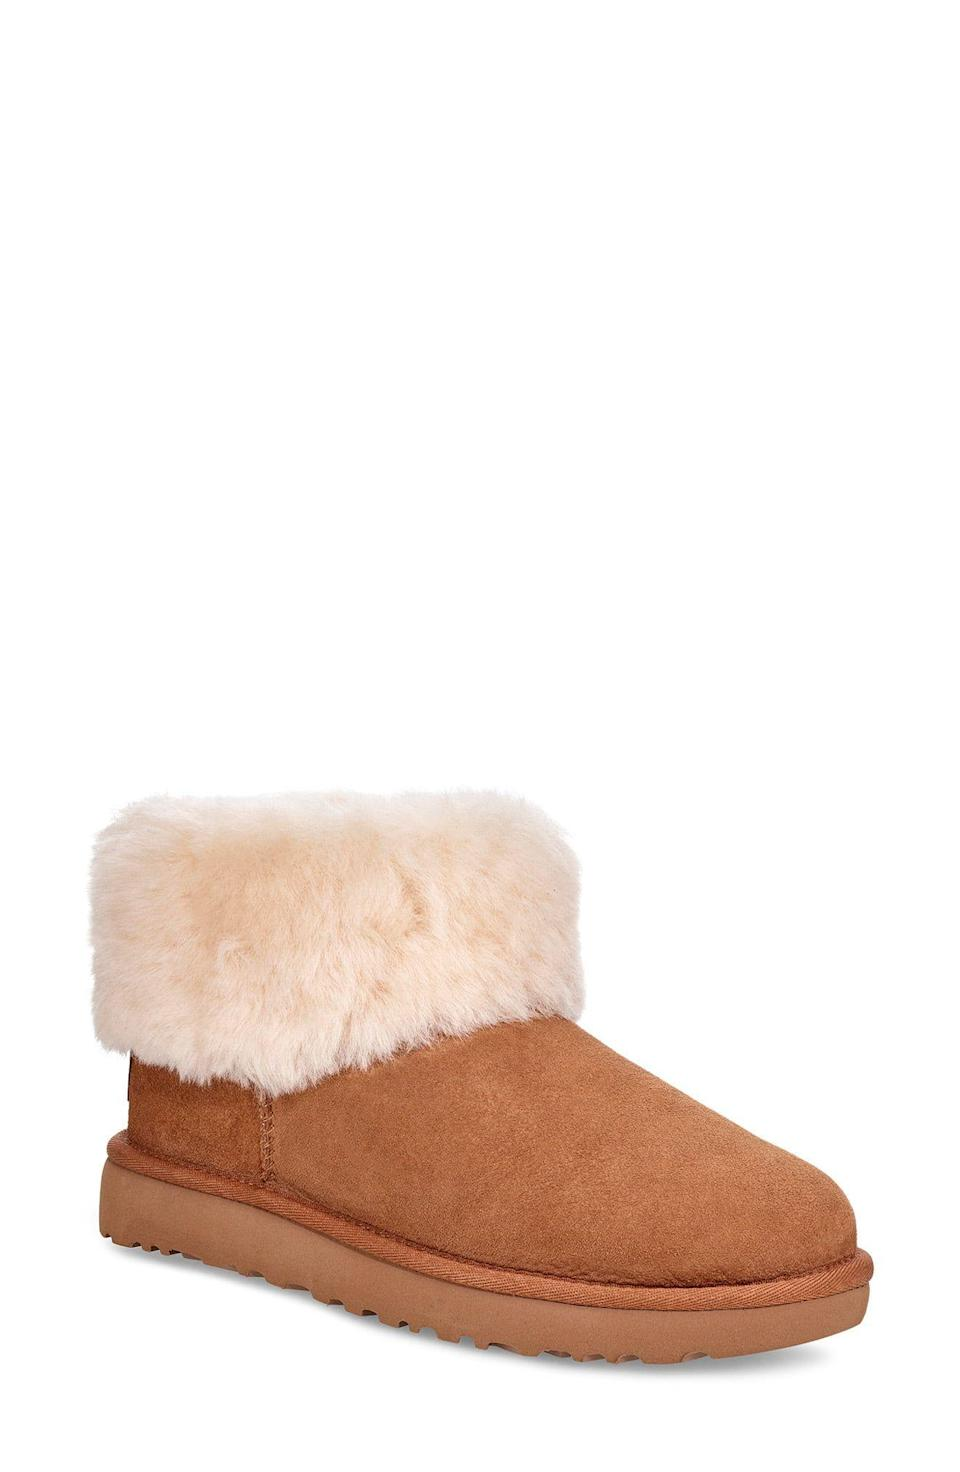 "<p><strong>UGG</strong></p><p>nordstrom.com</p><p><strong>$99.90</strong></p><p><a href=""https://go.redirectingat.com?id=74968X1596630&url=https%3A%2F%2Fwww.nordstrom.com%2Fs%2Fugg-classic-mini-fluff-genuine-shearling-bootie-women%2F5324753&sref=https%3A%2F%2Fwww.seventeen.com%2Ffashion%2Fg34775250%2Fnordstrom-12-days-of-cyber-savings-sale%2F"" rel=""nofollow noopener"" target=""_blank"" data-ylk=""slk:SHOP"" class=""link rapid-noclick-resp"">SHOP</a></p><p><strong><del>$160</del></strong><strong> $99.90 (37% off)</strong></p><p>If you're not toting around the house in these while binge-watching <em>The Queen's Gambit, </em>are you really quarantining? <br></p>"